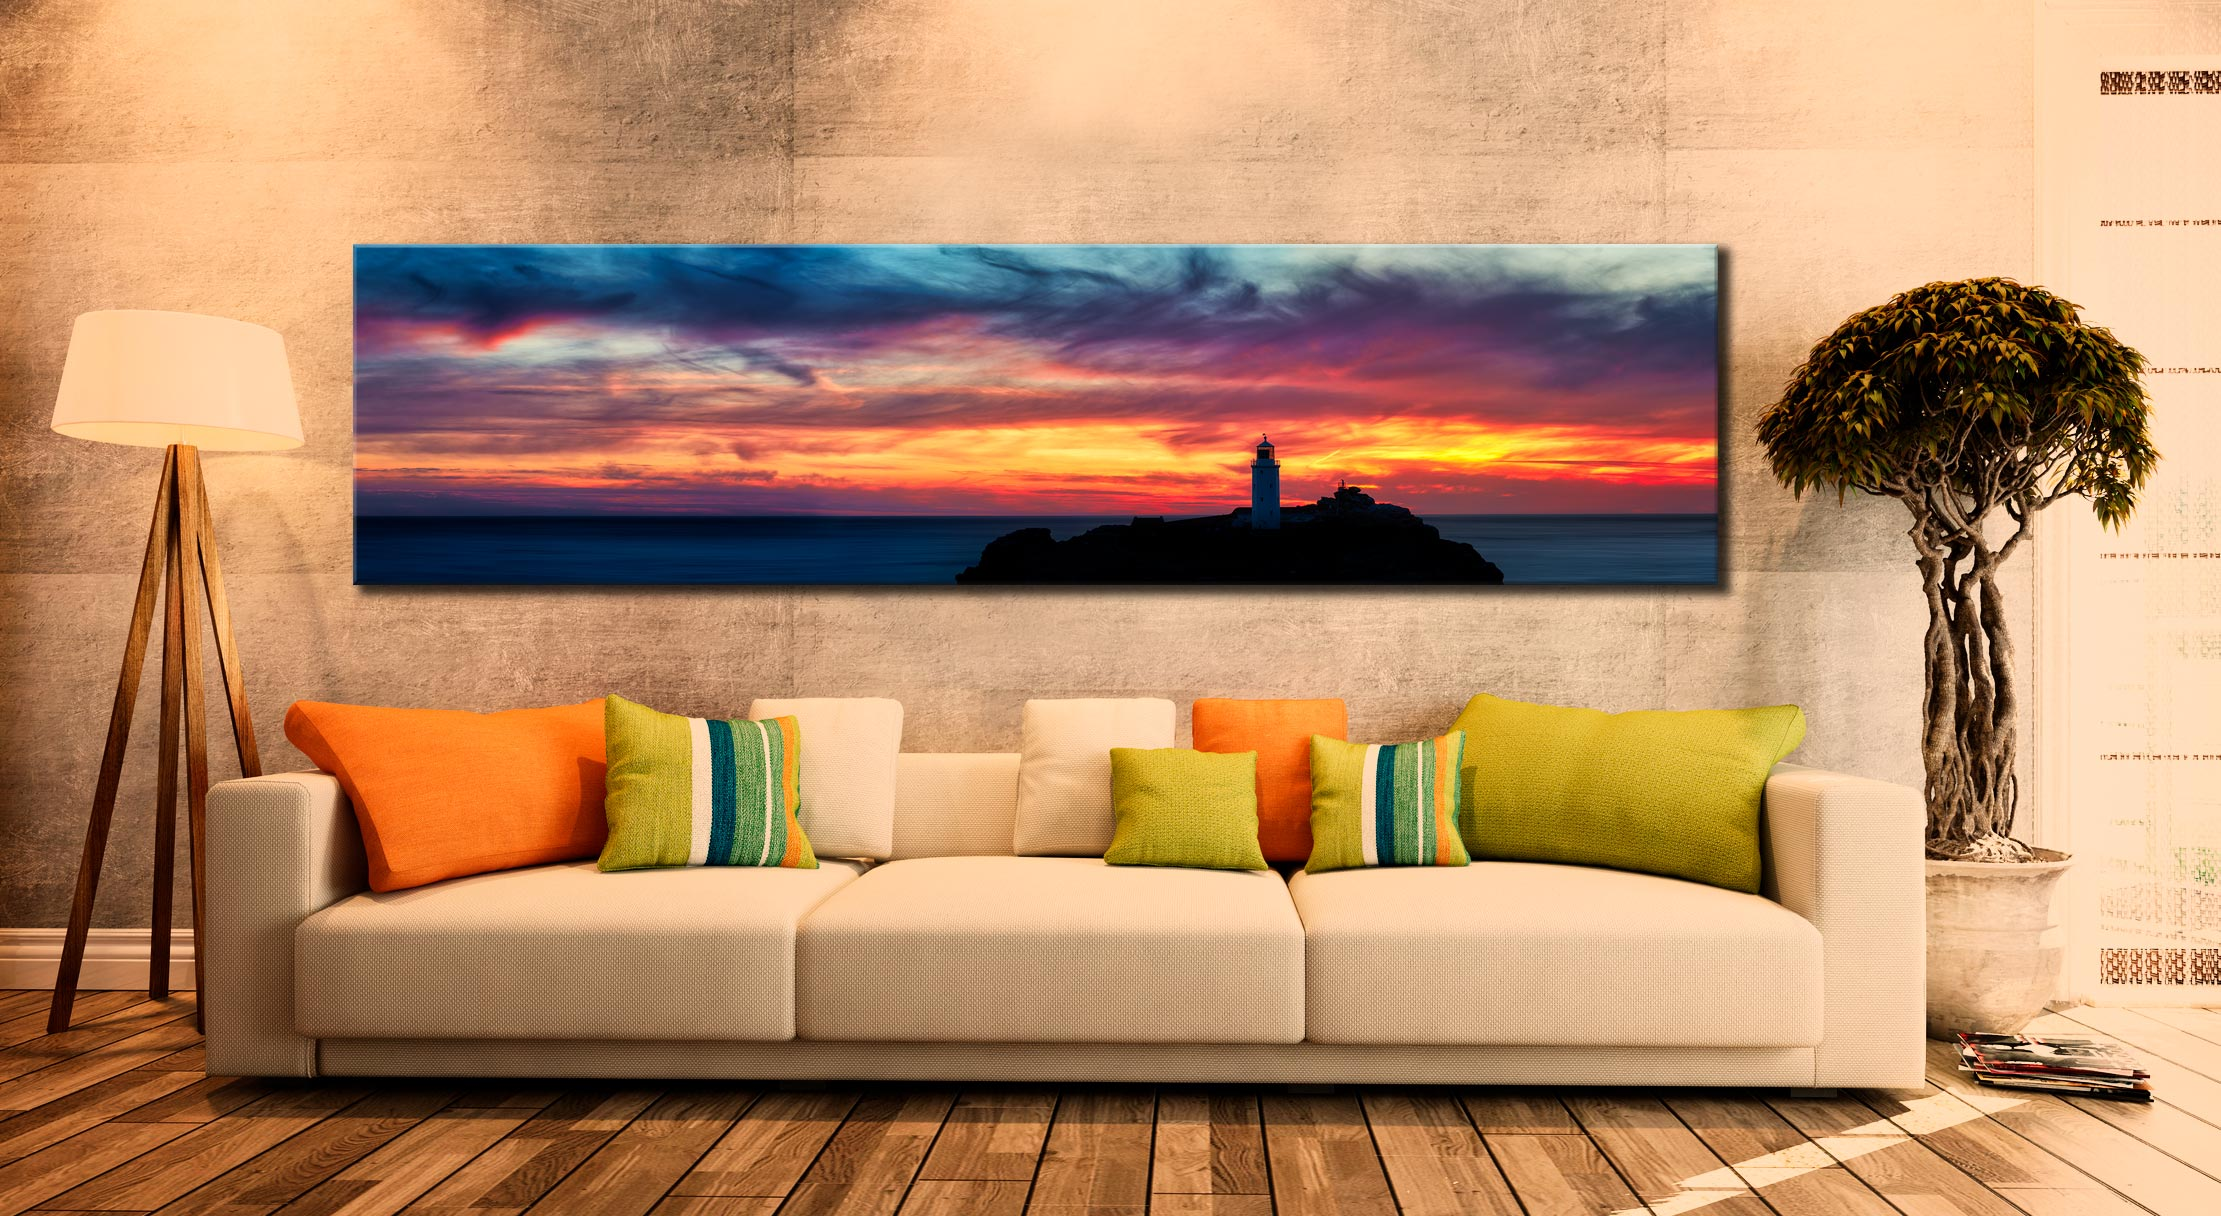 Dusk Skies Over Godrevy Lighthouse - Cornwall Canvas on Wall